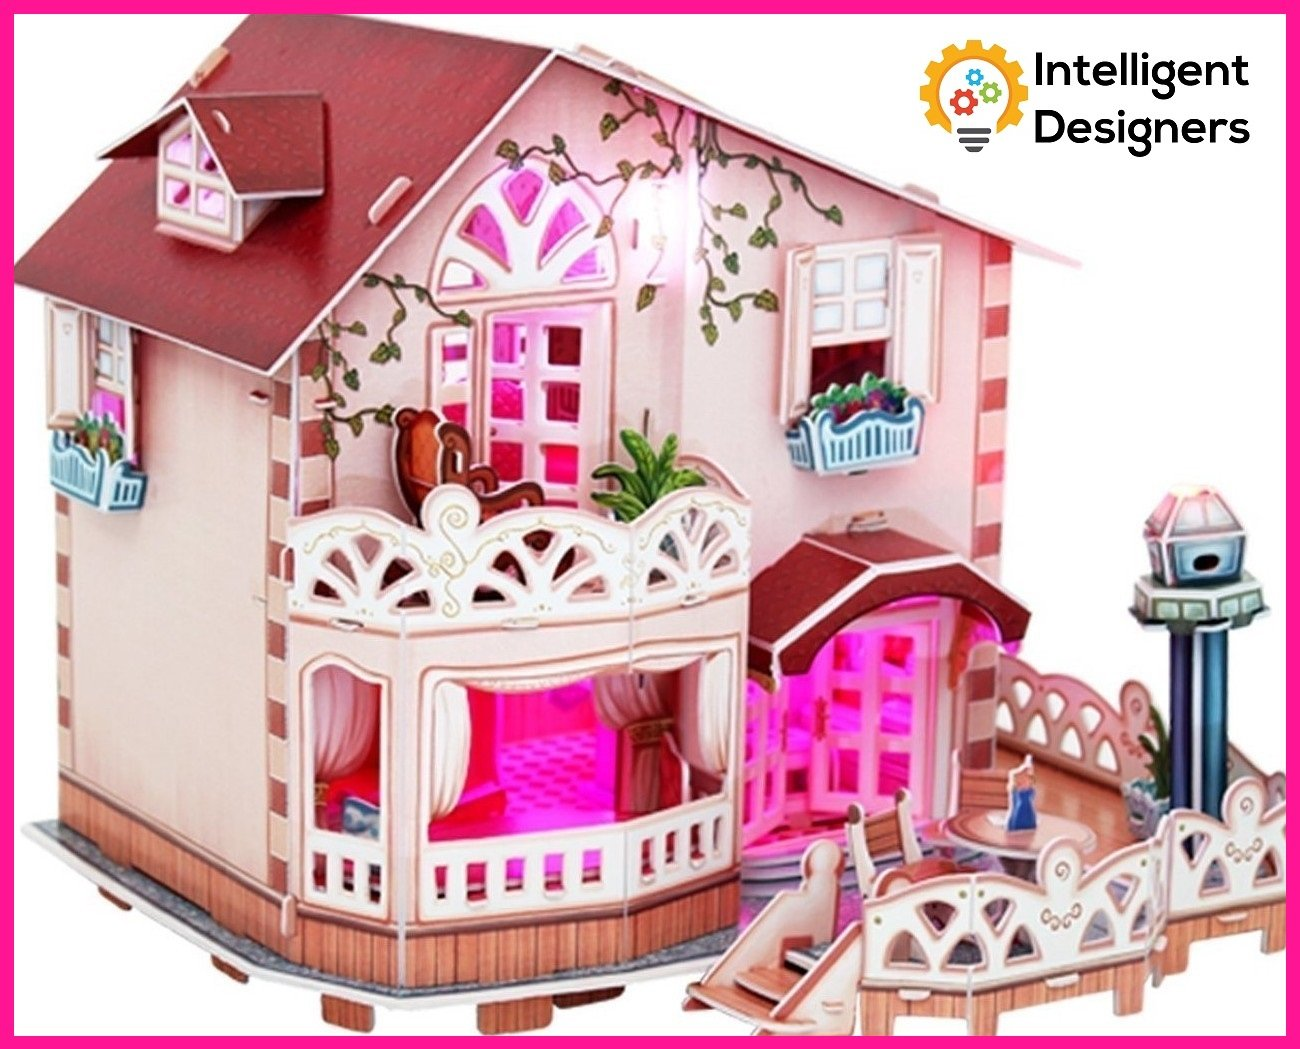 Amazon.com: Build Wonderful Loving Memories With Our Best Holiday ...